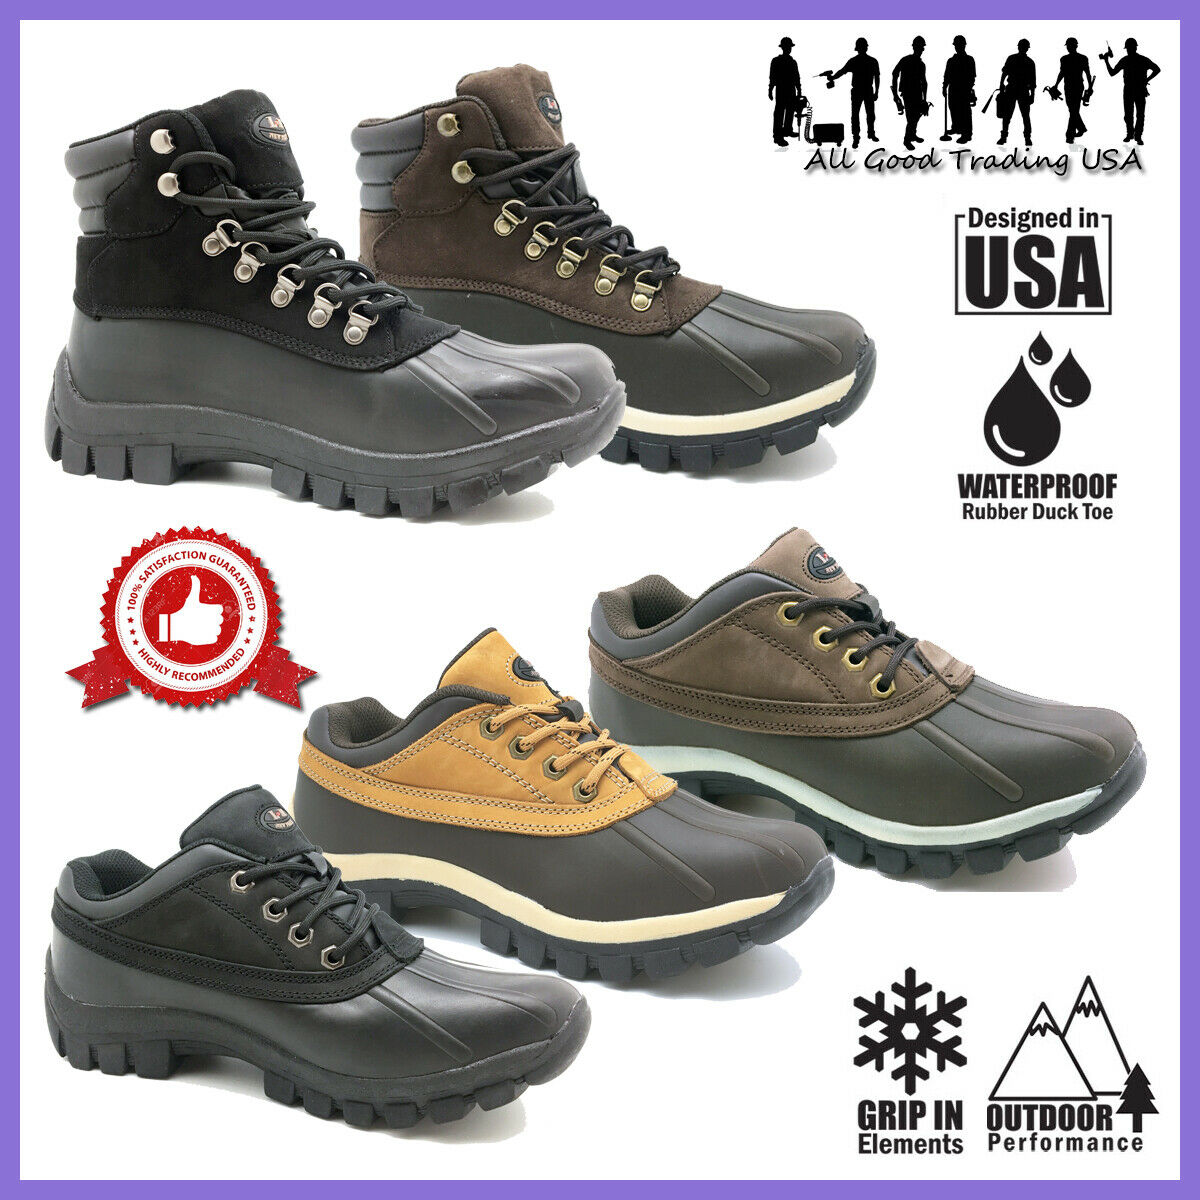 LM Winter Snow Boots Men's Insulated Work Boots Waterproof R